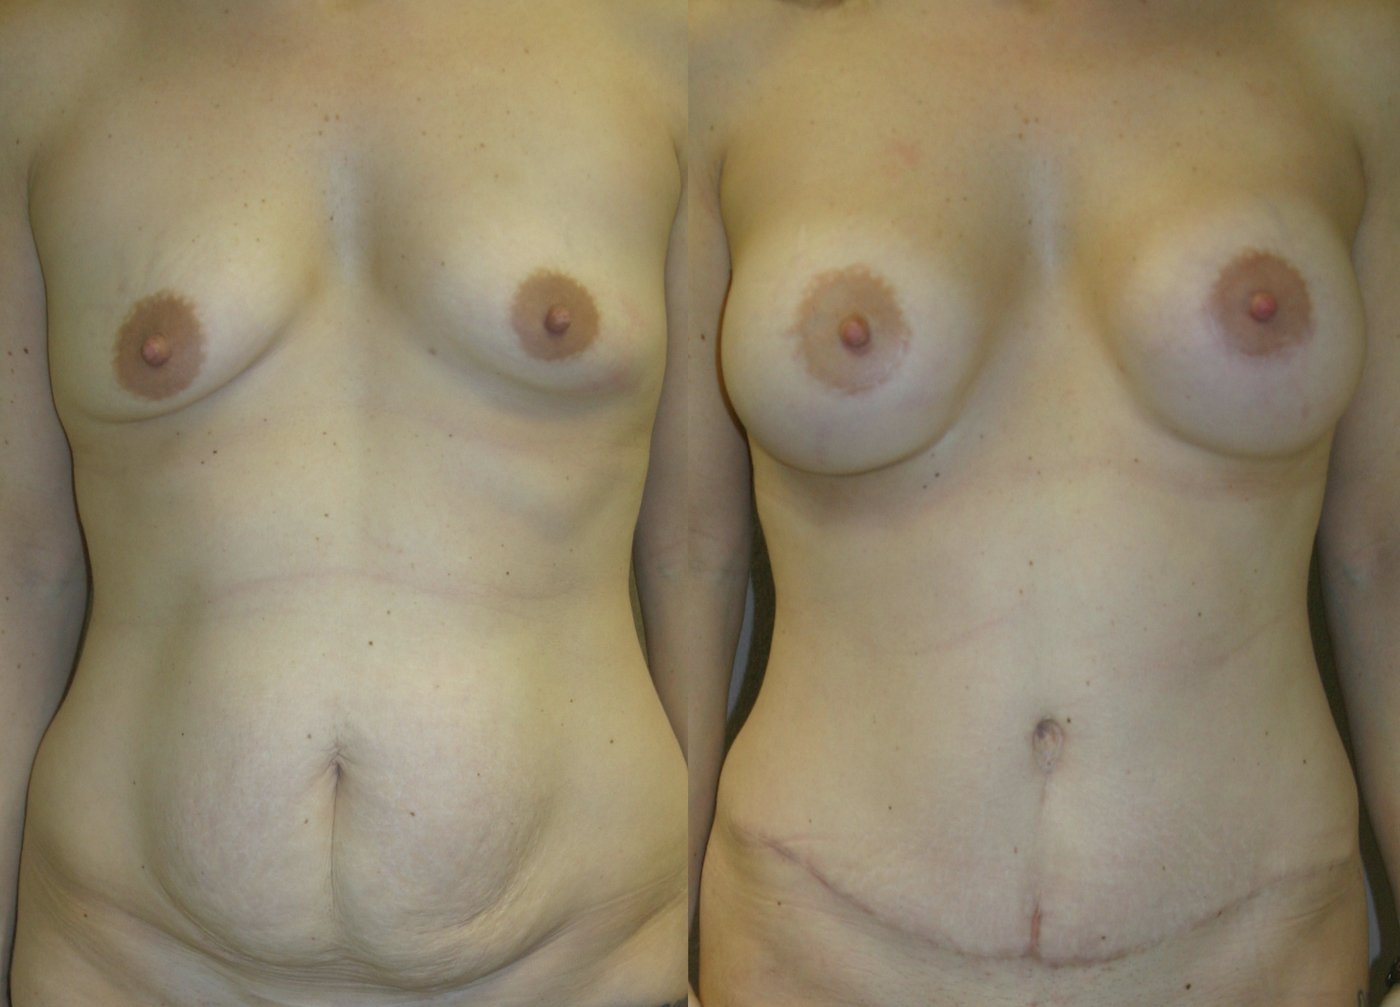 36-year-old Mommy Makover, Breast Augmentation and Tummy Tuck 6 months after surgery, front view